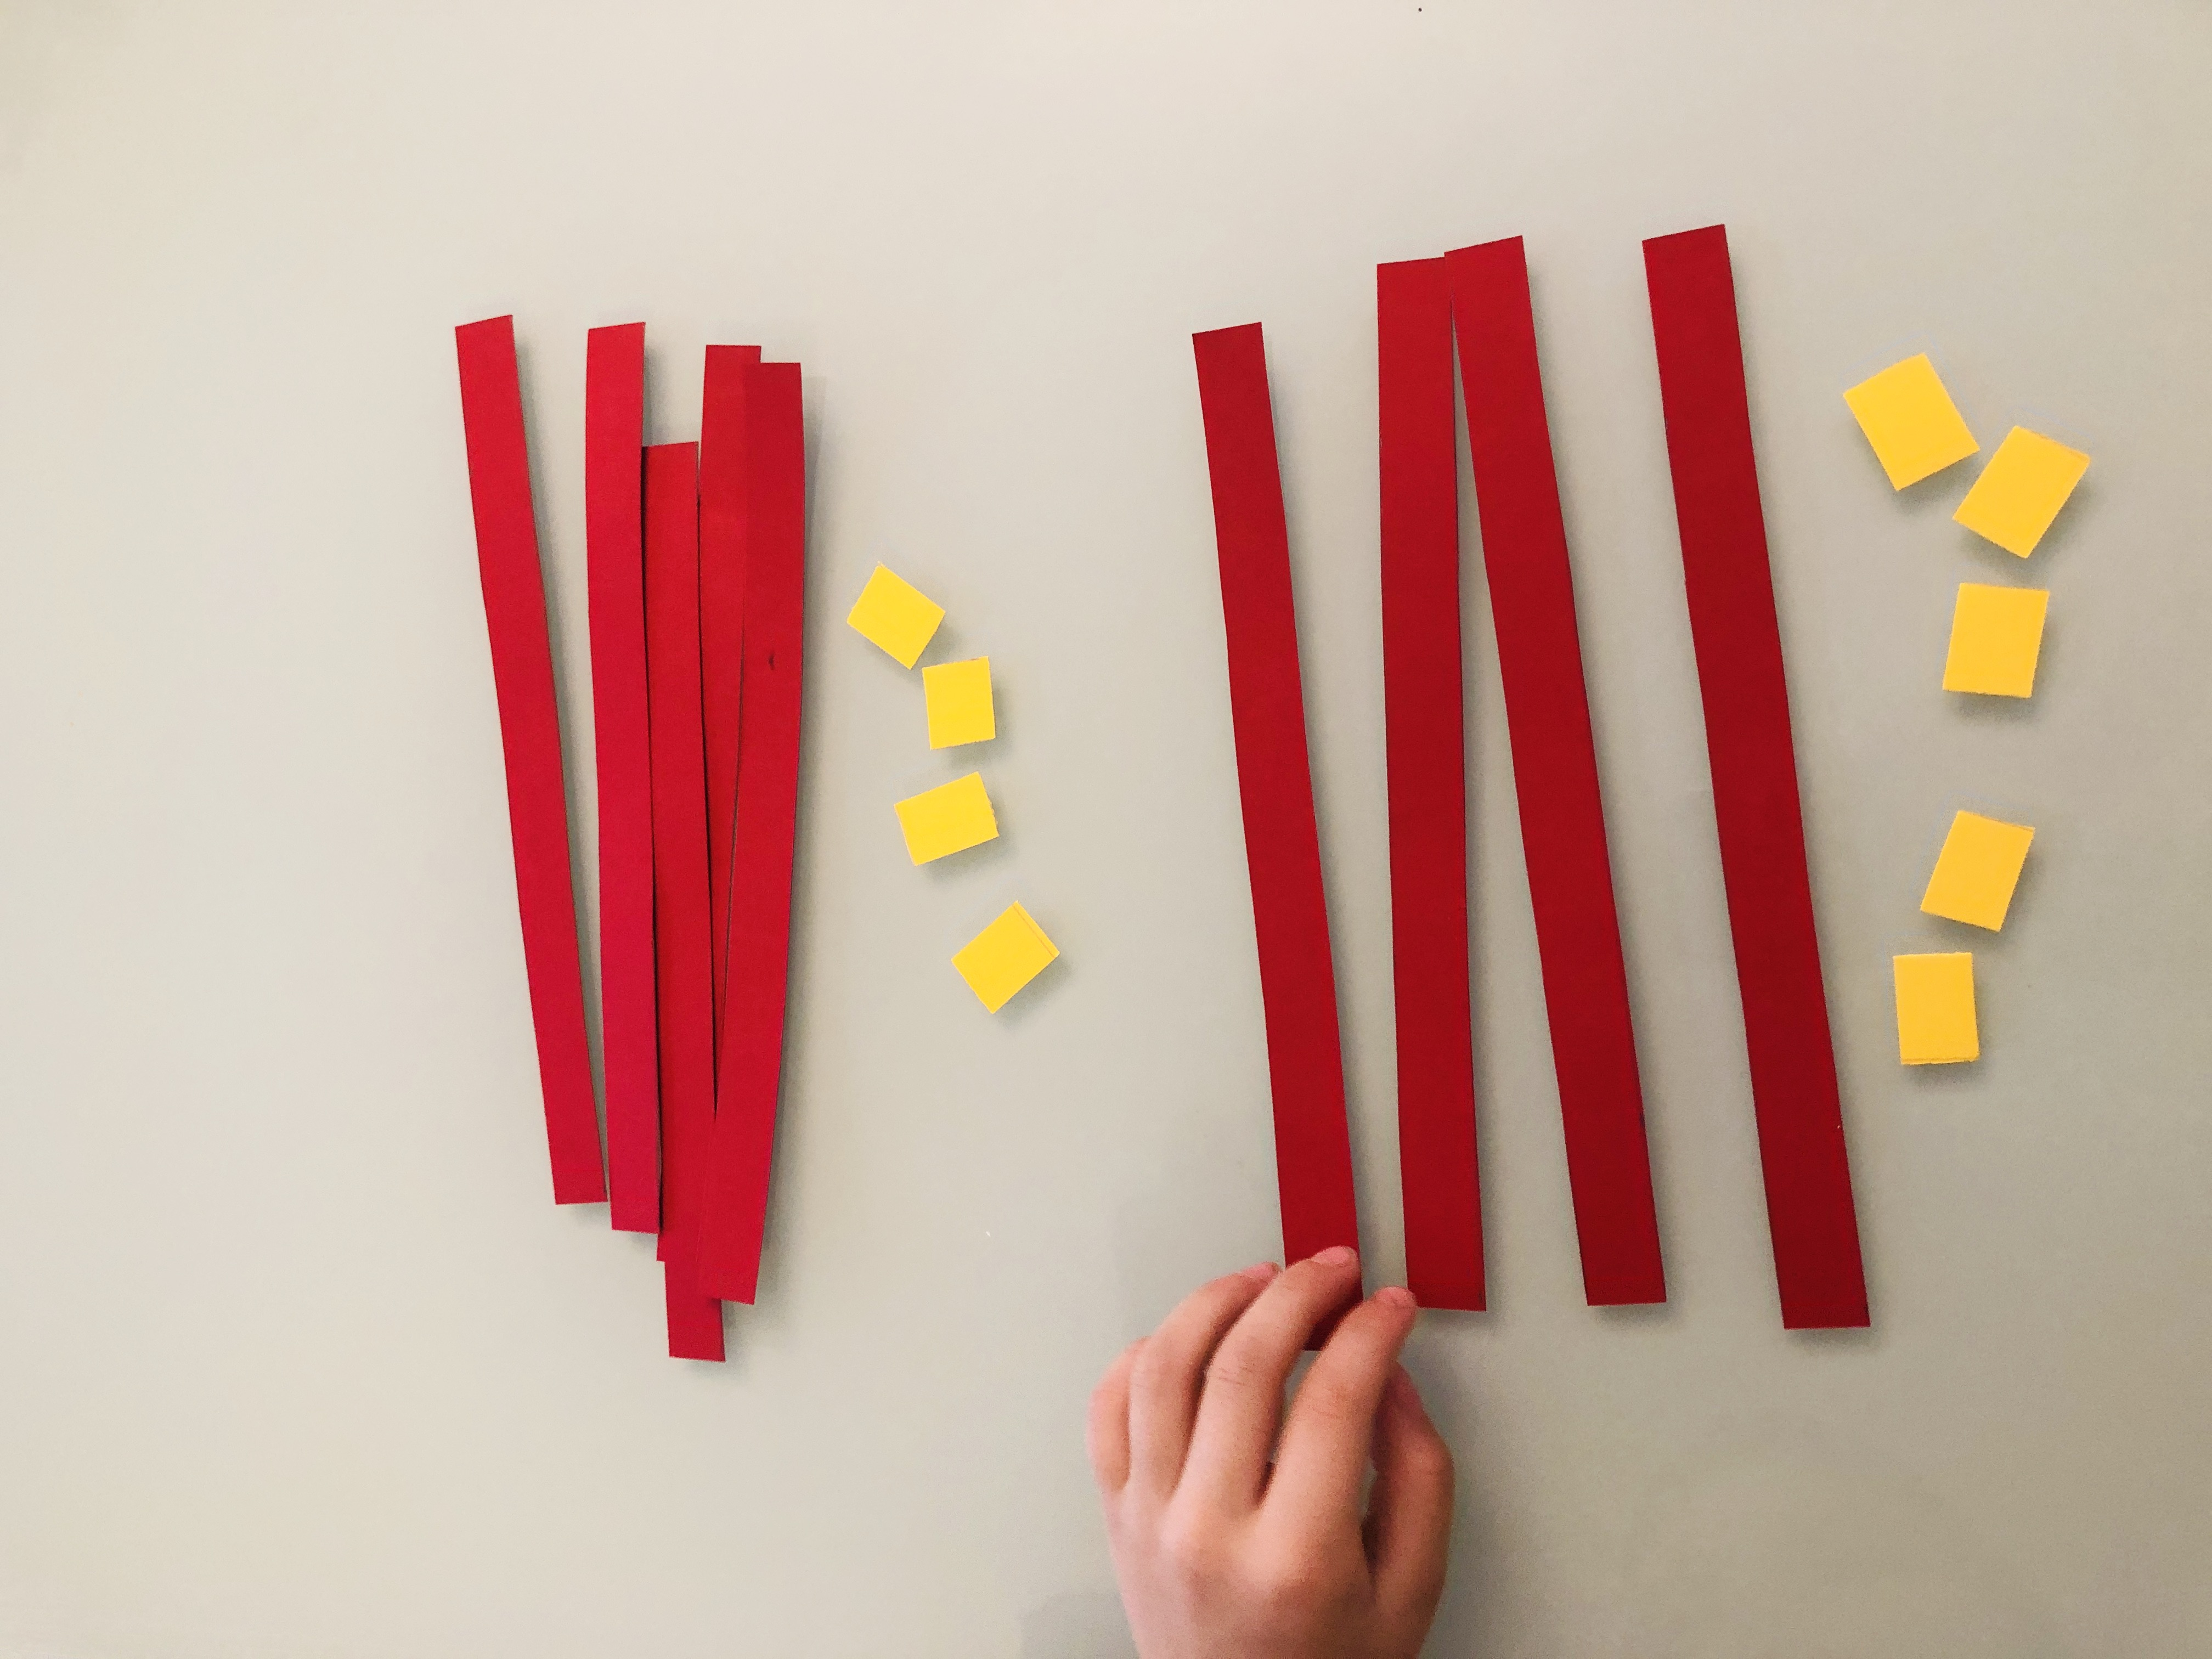 kid adding two-digit numbers using red and yellow cut-outs